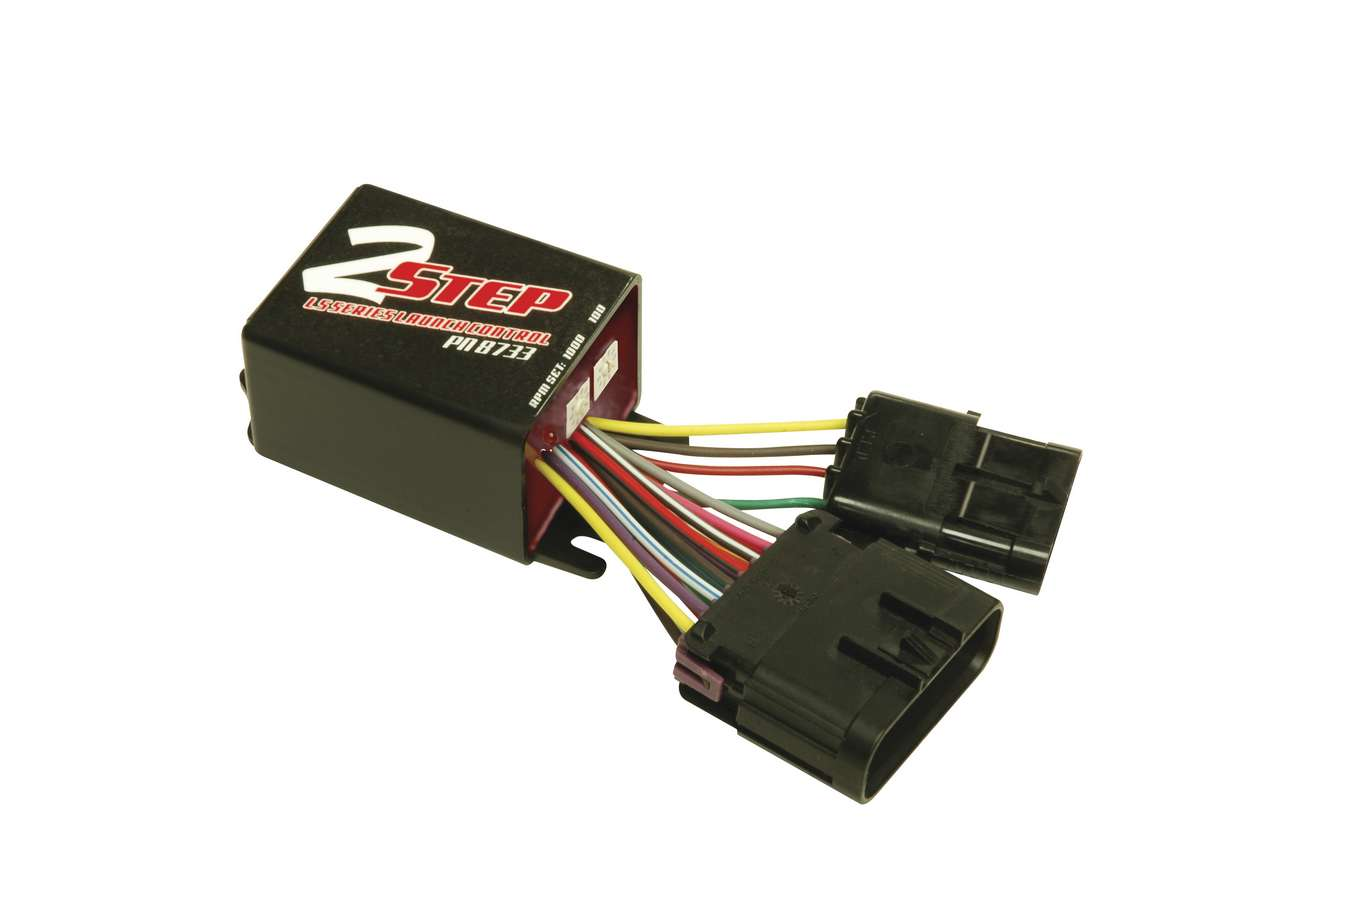 Shop For Ignition Boxes And Components Etheridge Race Parts Wiring Diagram Msd 7530t 2 Step Launch Control Gm Ls Engines